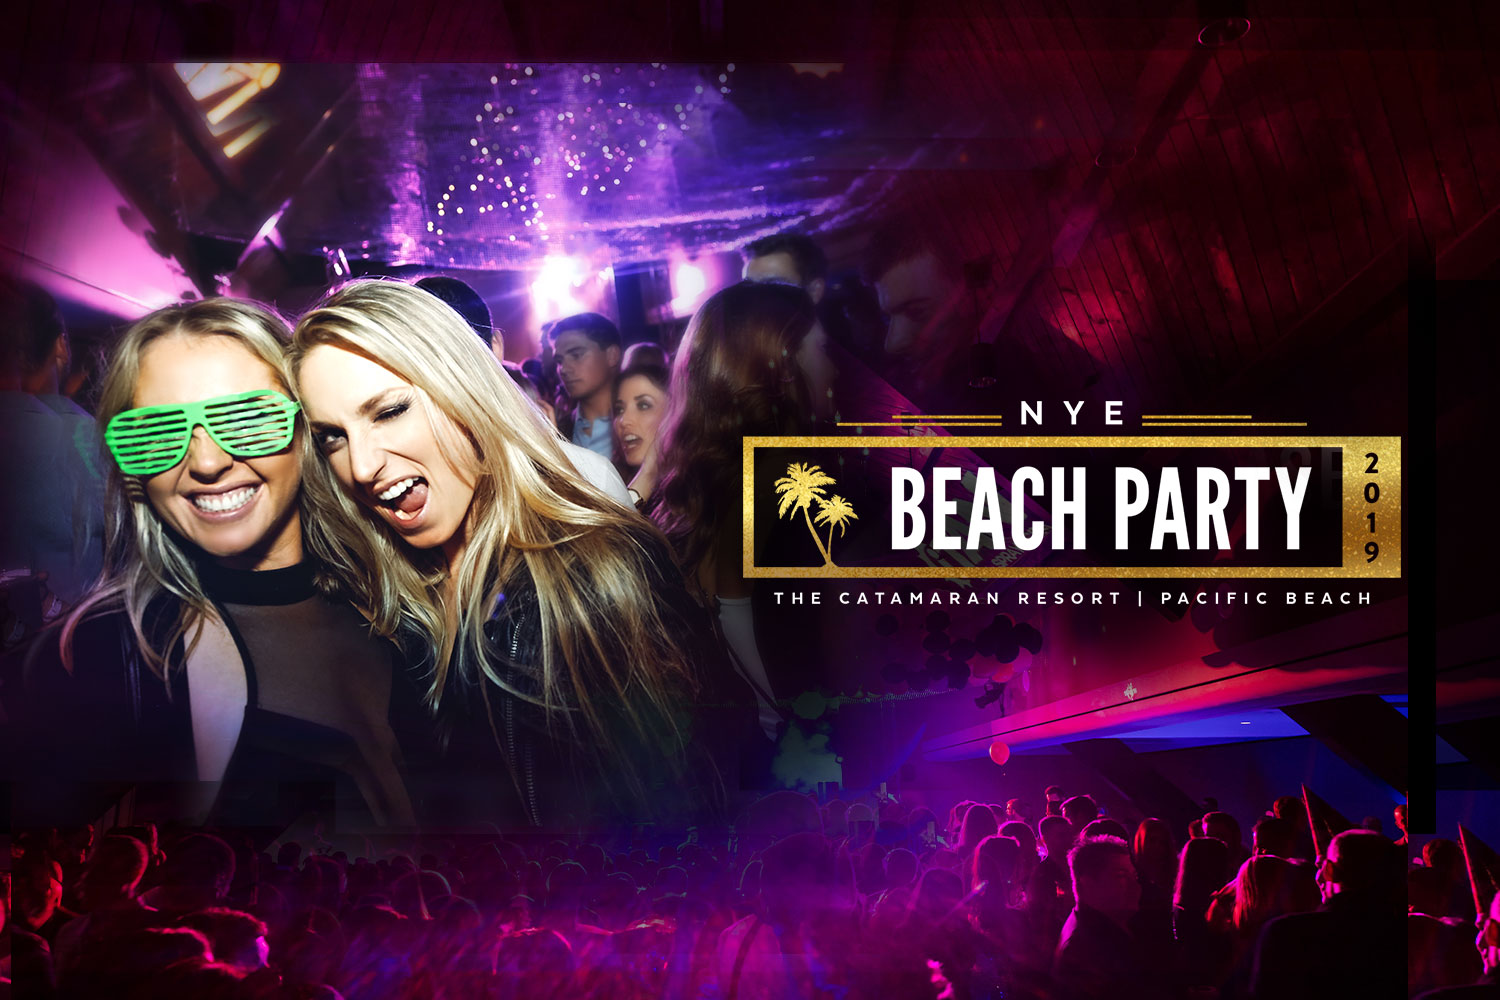 Nye Beach Party 2019 Vavi Sport Amp Social Club